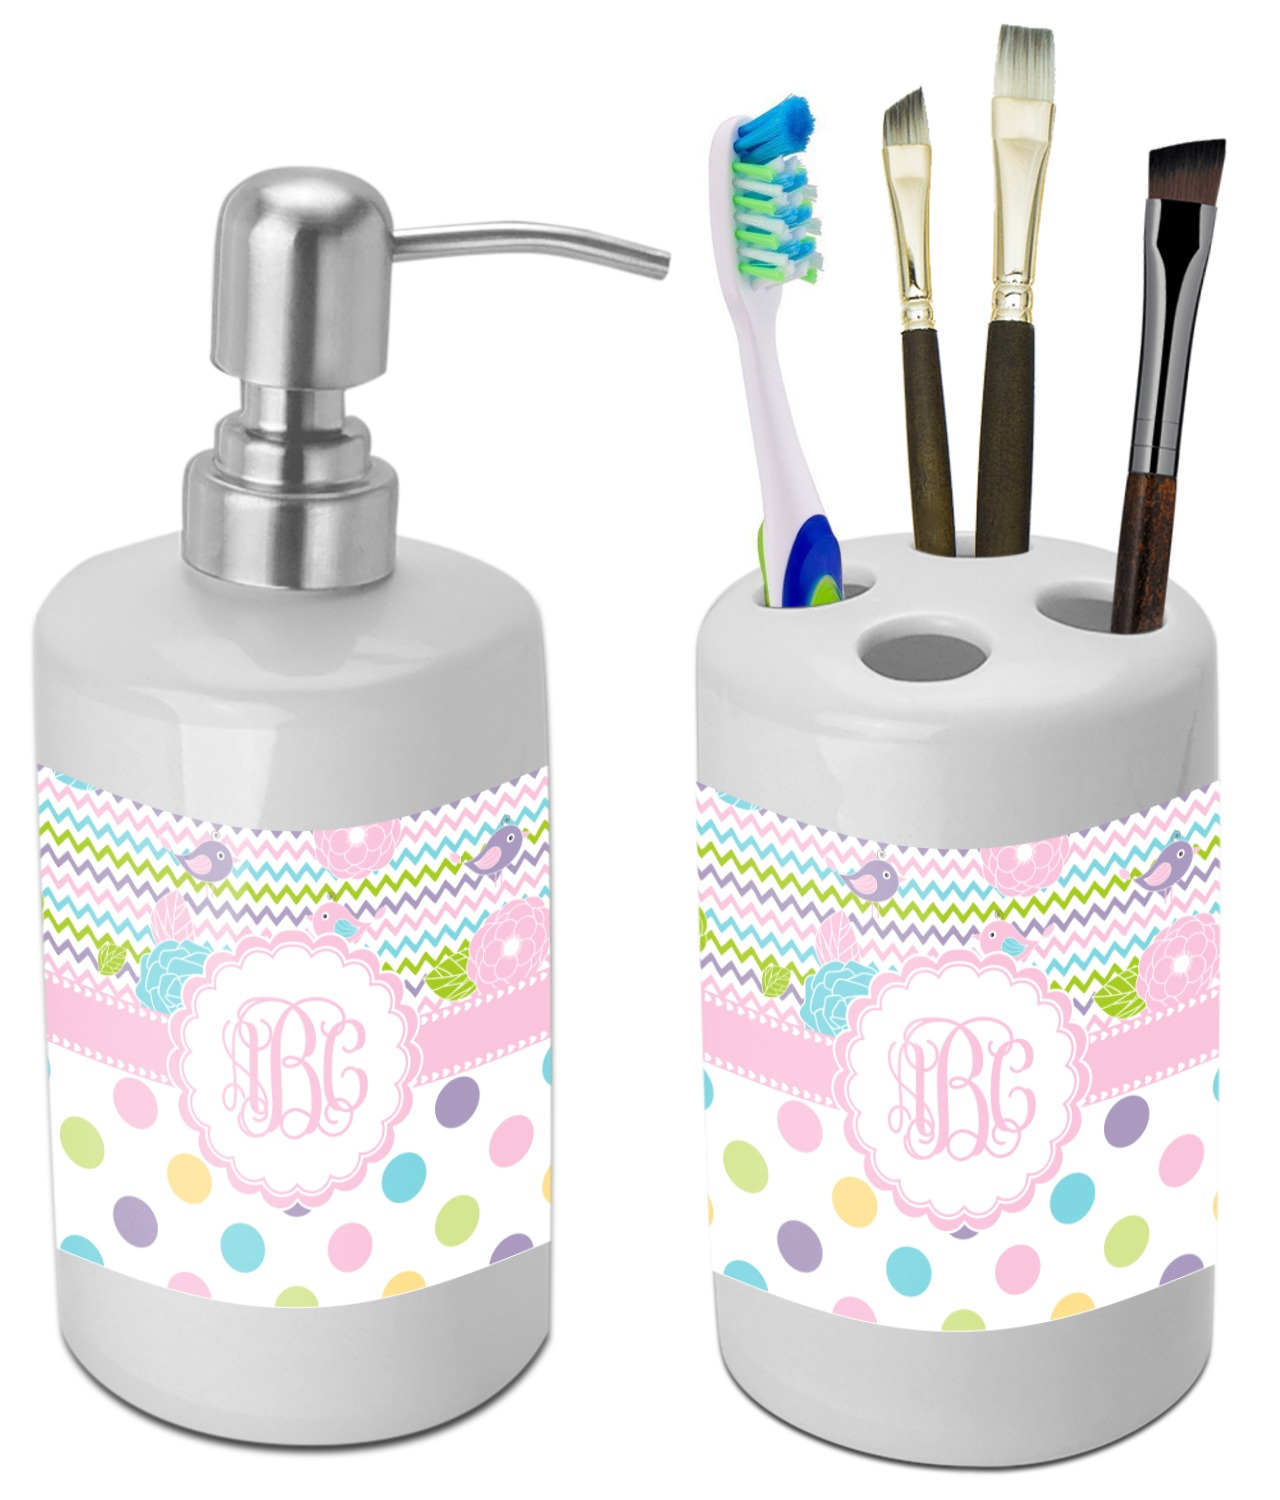 Girly Girl Bathroom Accessories Set (Ceramic) (Personalized ...